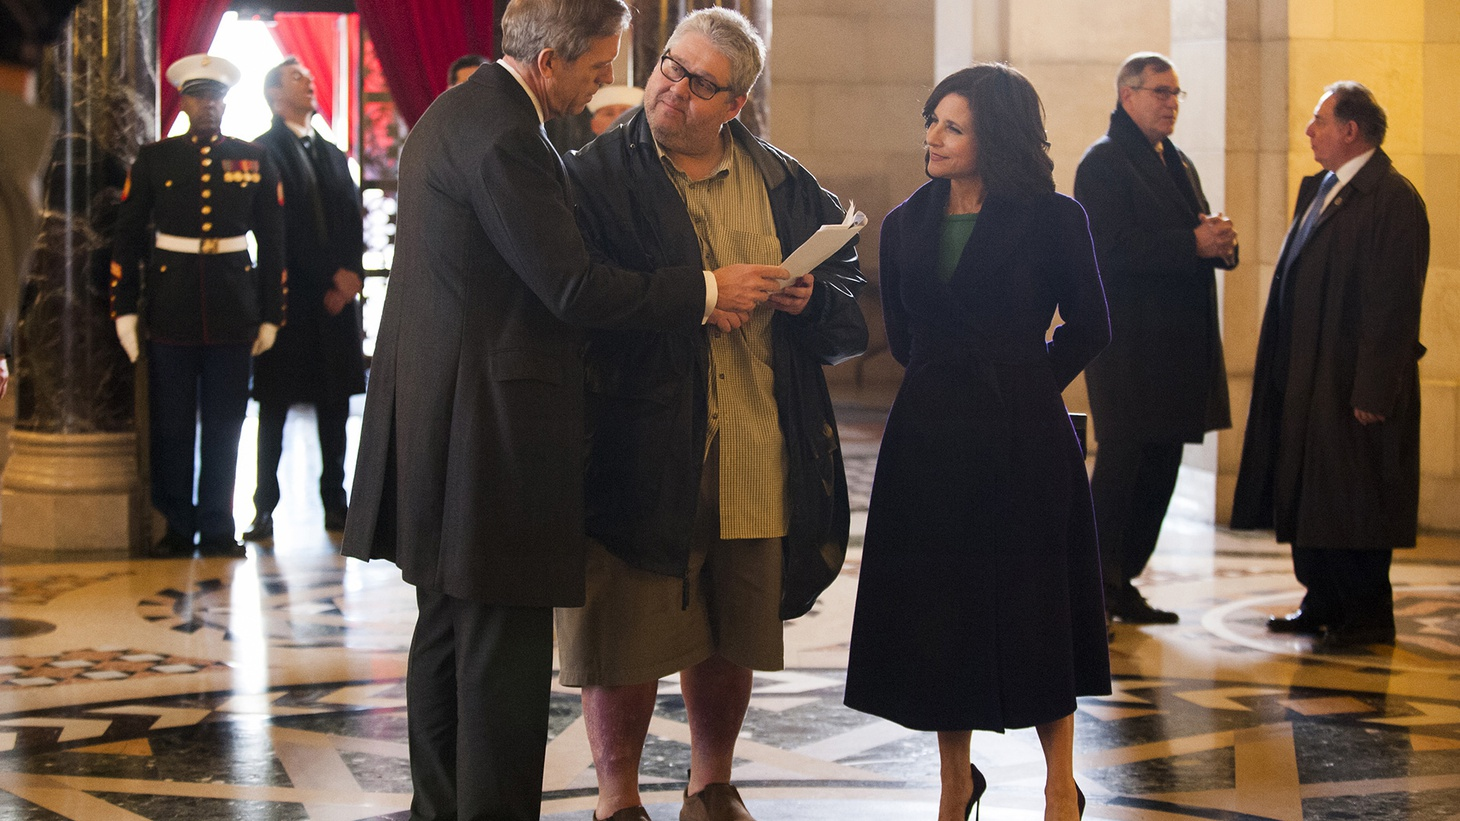 For the past two seasons, former Seinfeld and Curb Your Enthusiasm writer David Mandel has been showrunning HBO's Veep. And while the show can have eerie parallels to reality, Mandel tells us that more often than not, it's real life that ends up imitating Veep.